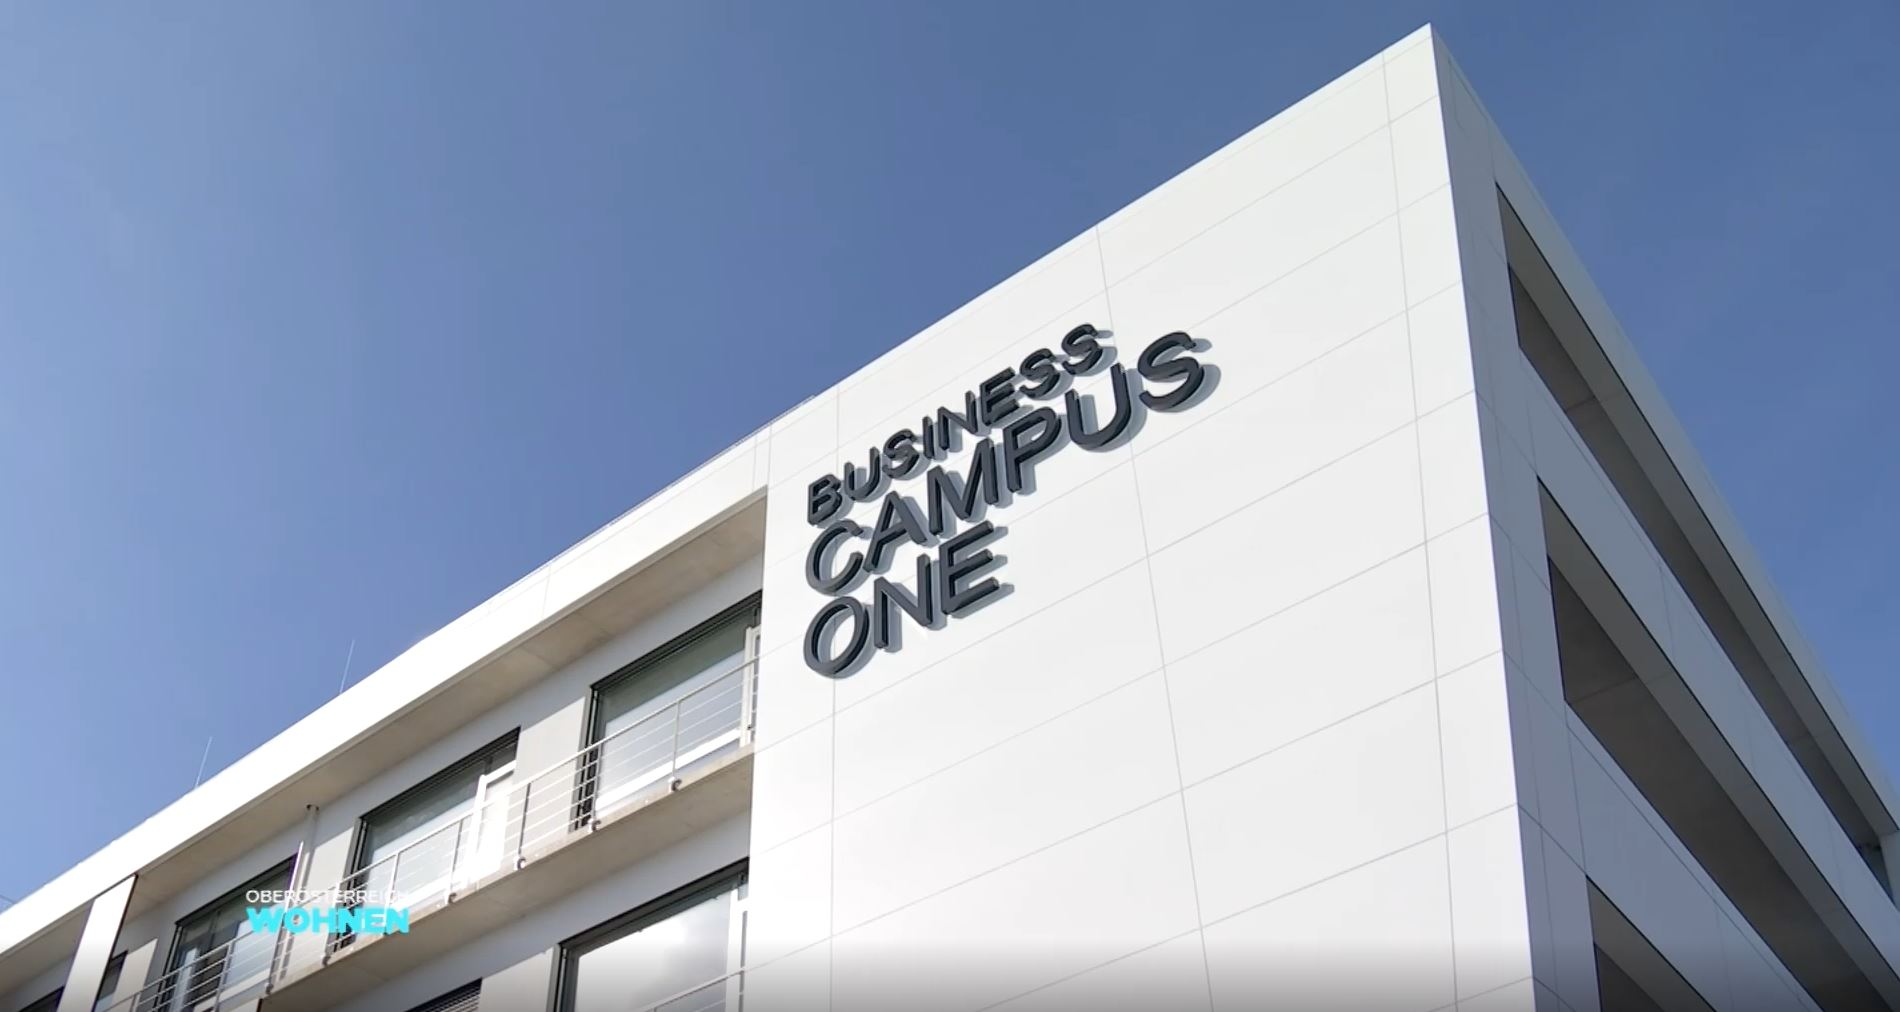 Business Campus One